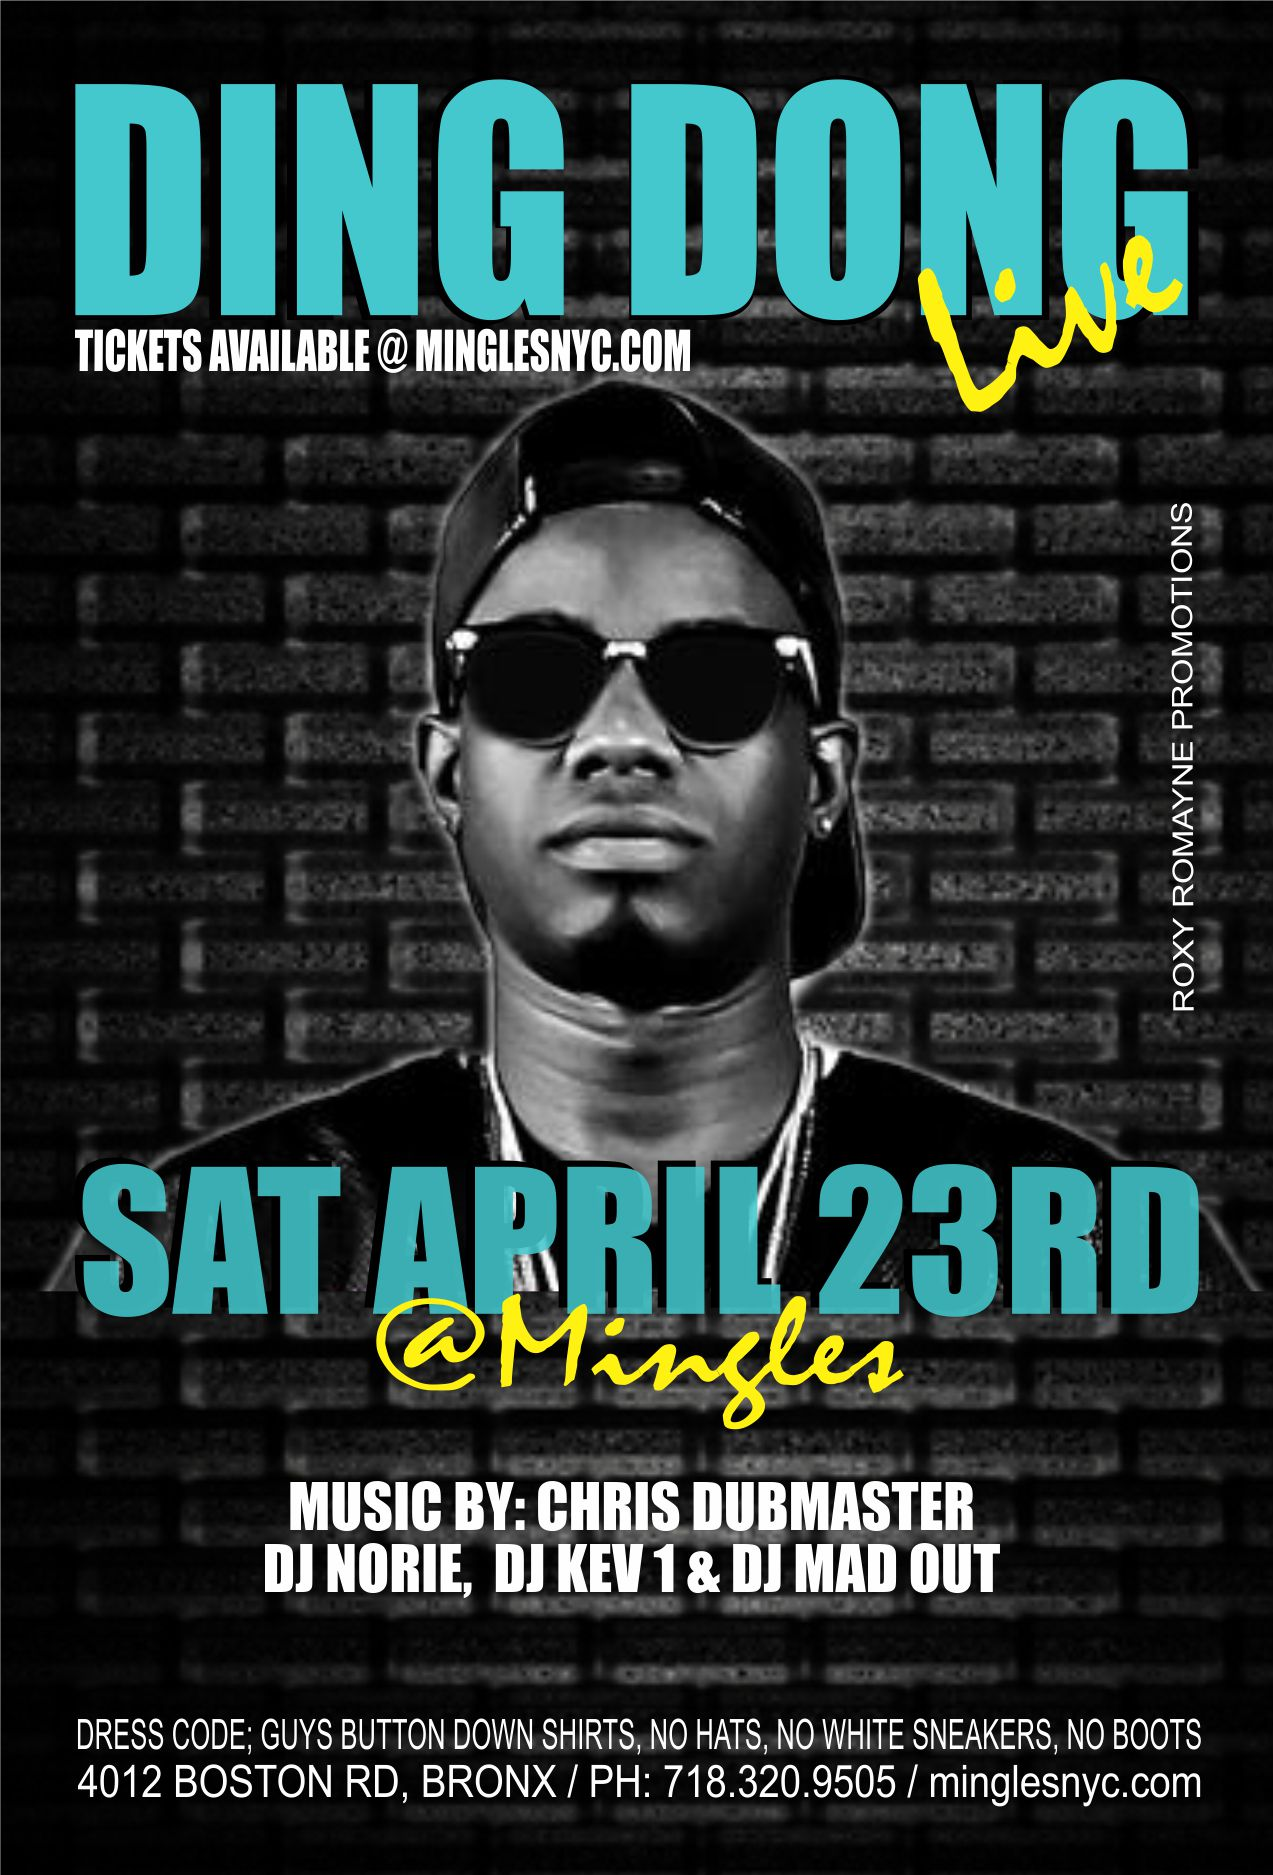 DING DONG LIVE @ MINGLES Tickets, Sat, Apr 23, 2016 at 11 ...